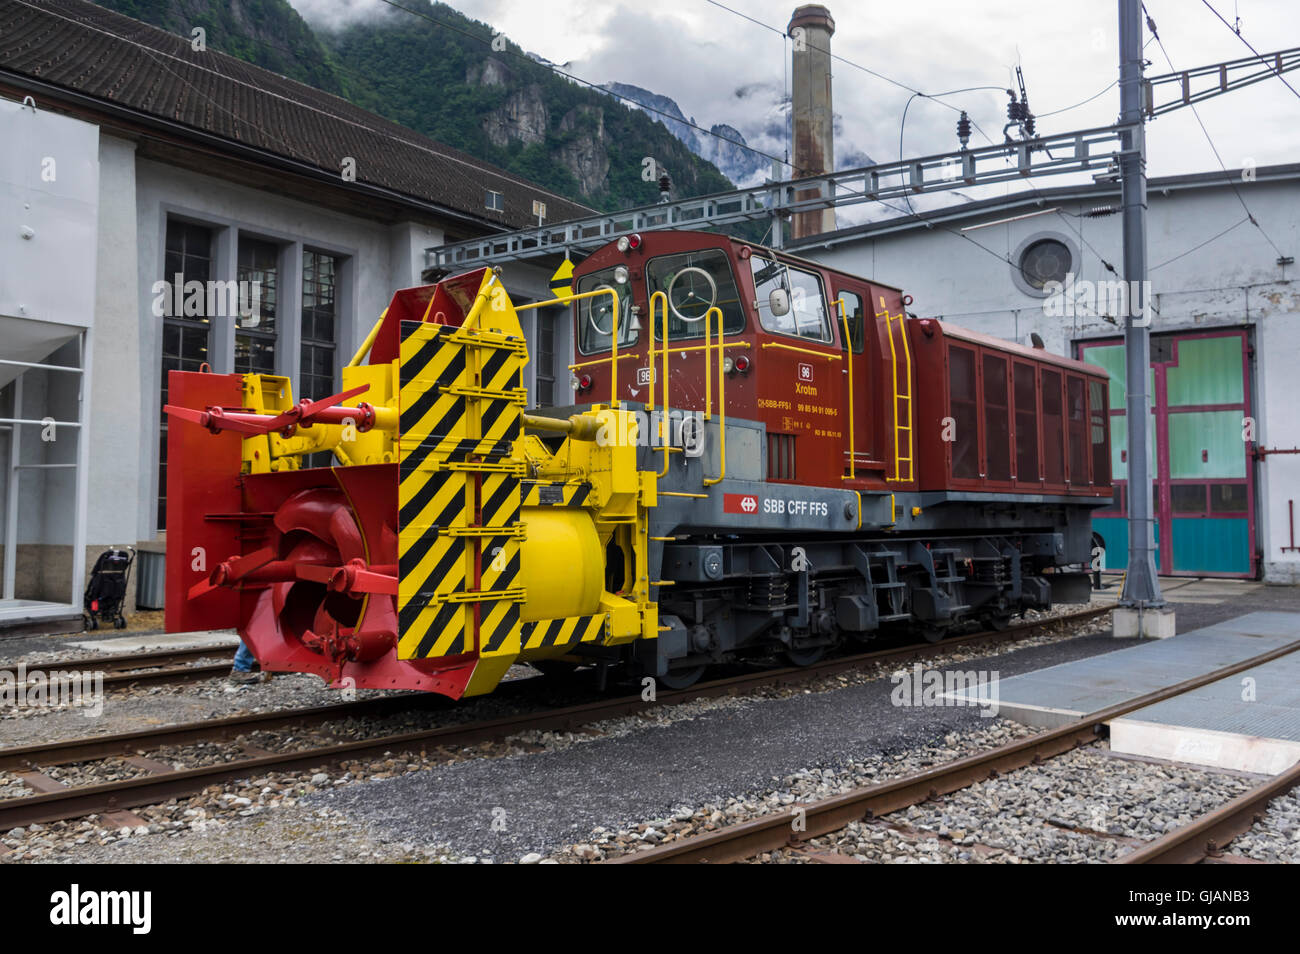 Diesel-hydraulic rotary snowplow Xrotm 96, built 1982 and operated by SBB, the Swiss Federal Railways. - Stock Image